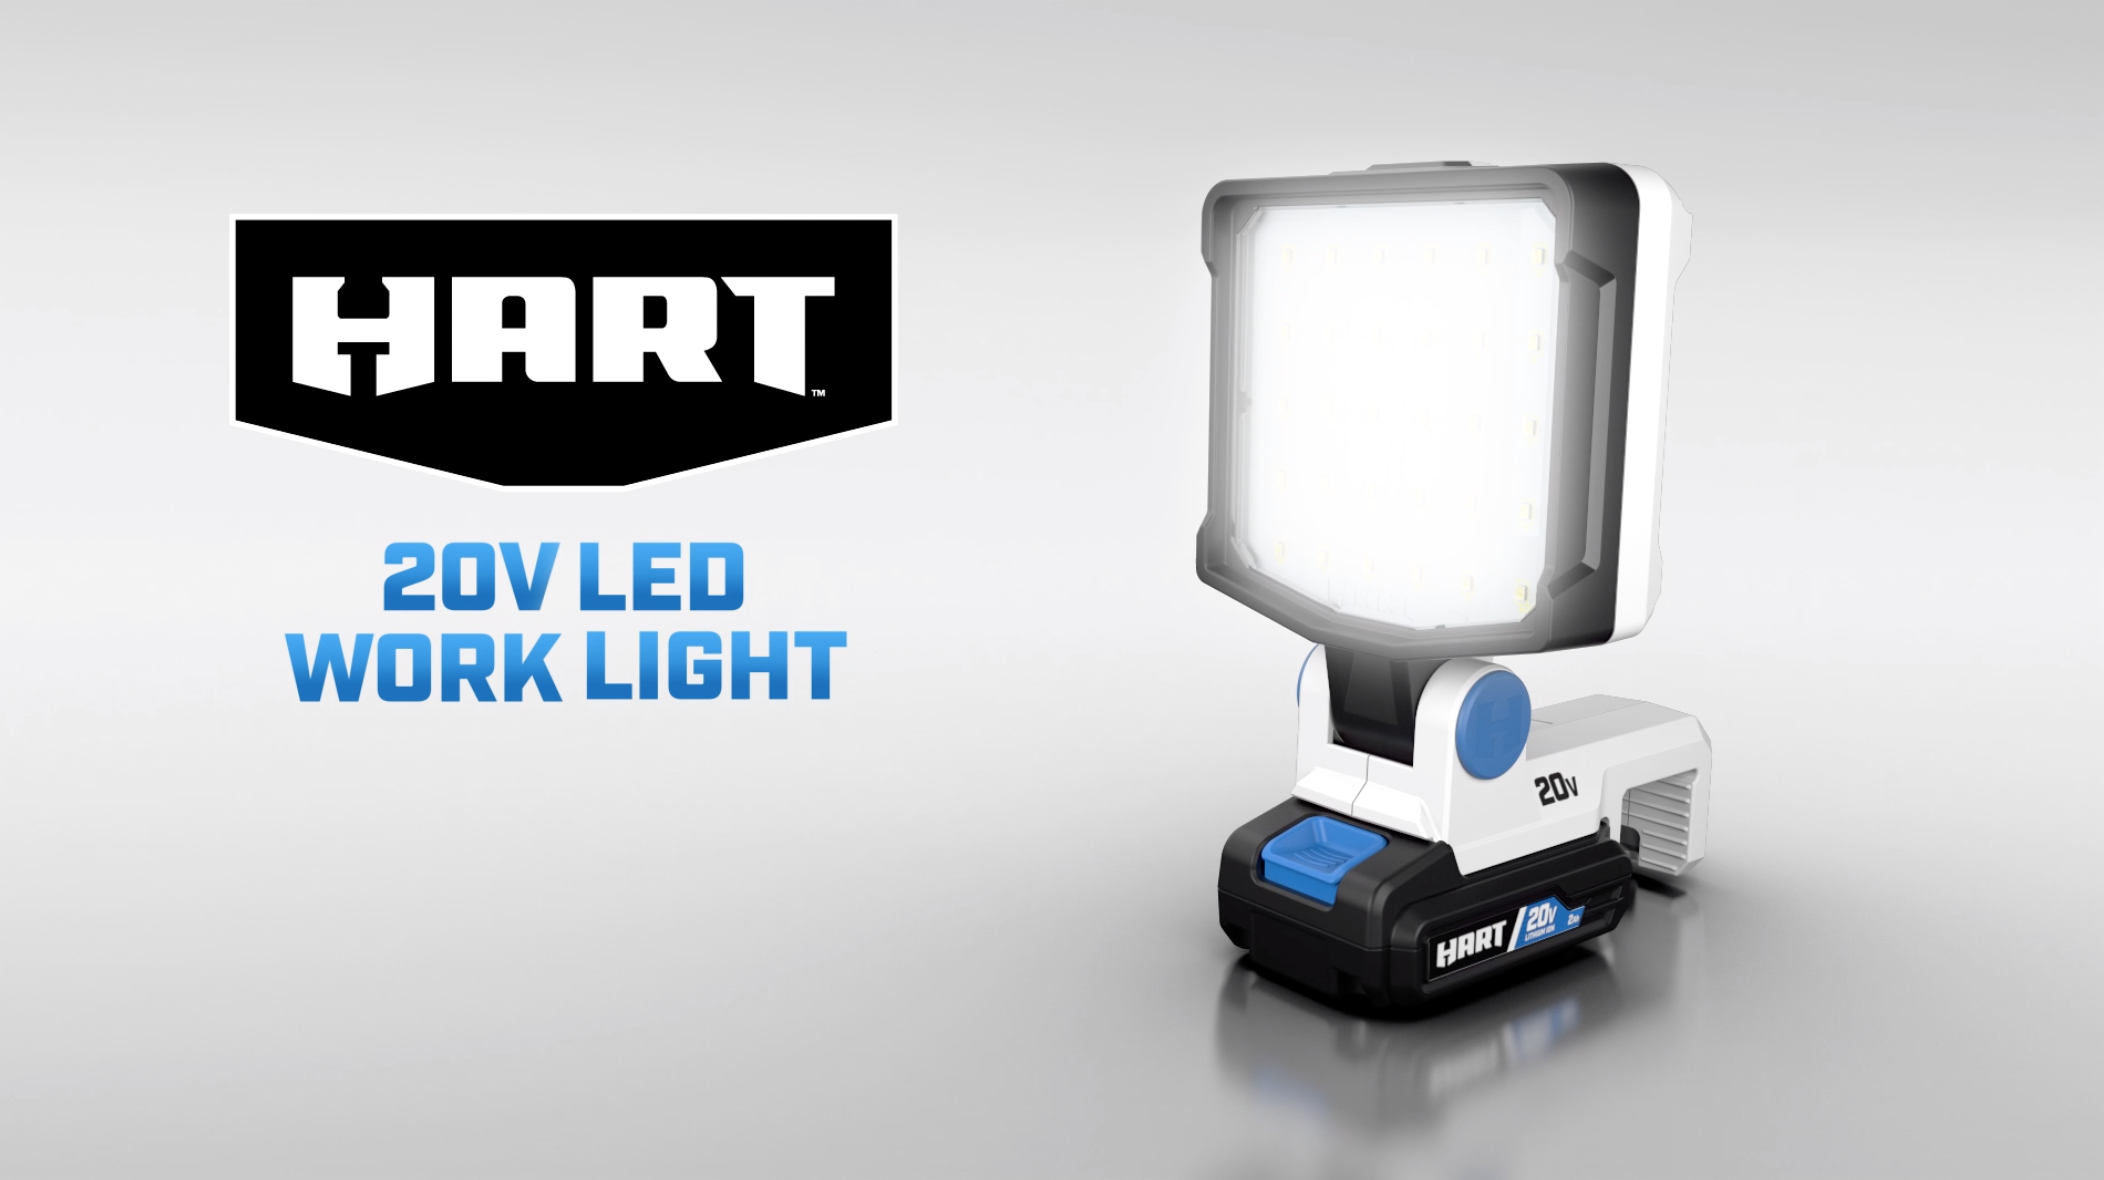 HART 20V LED Work Light